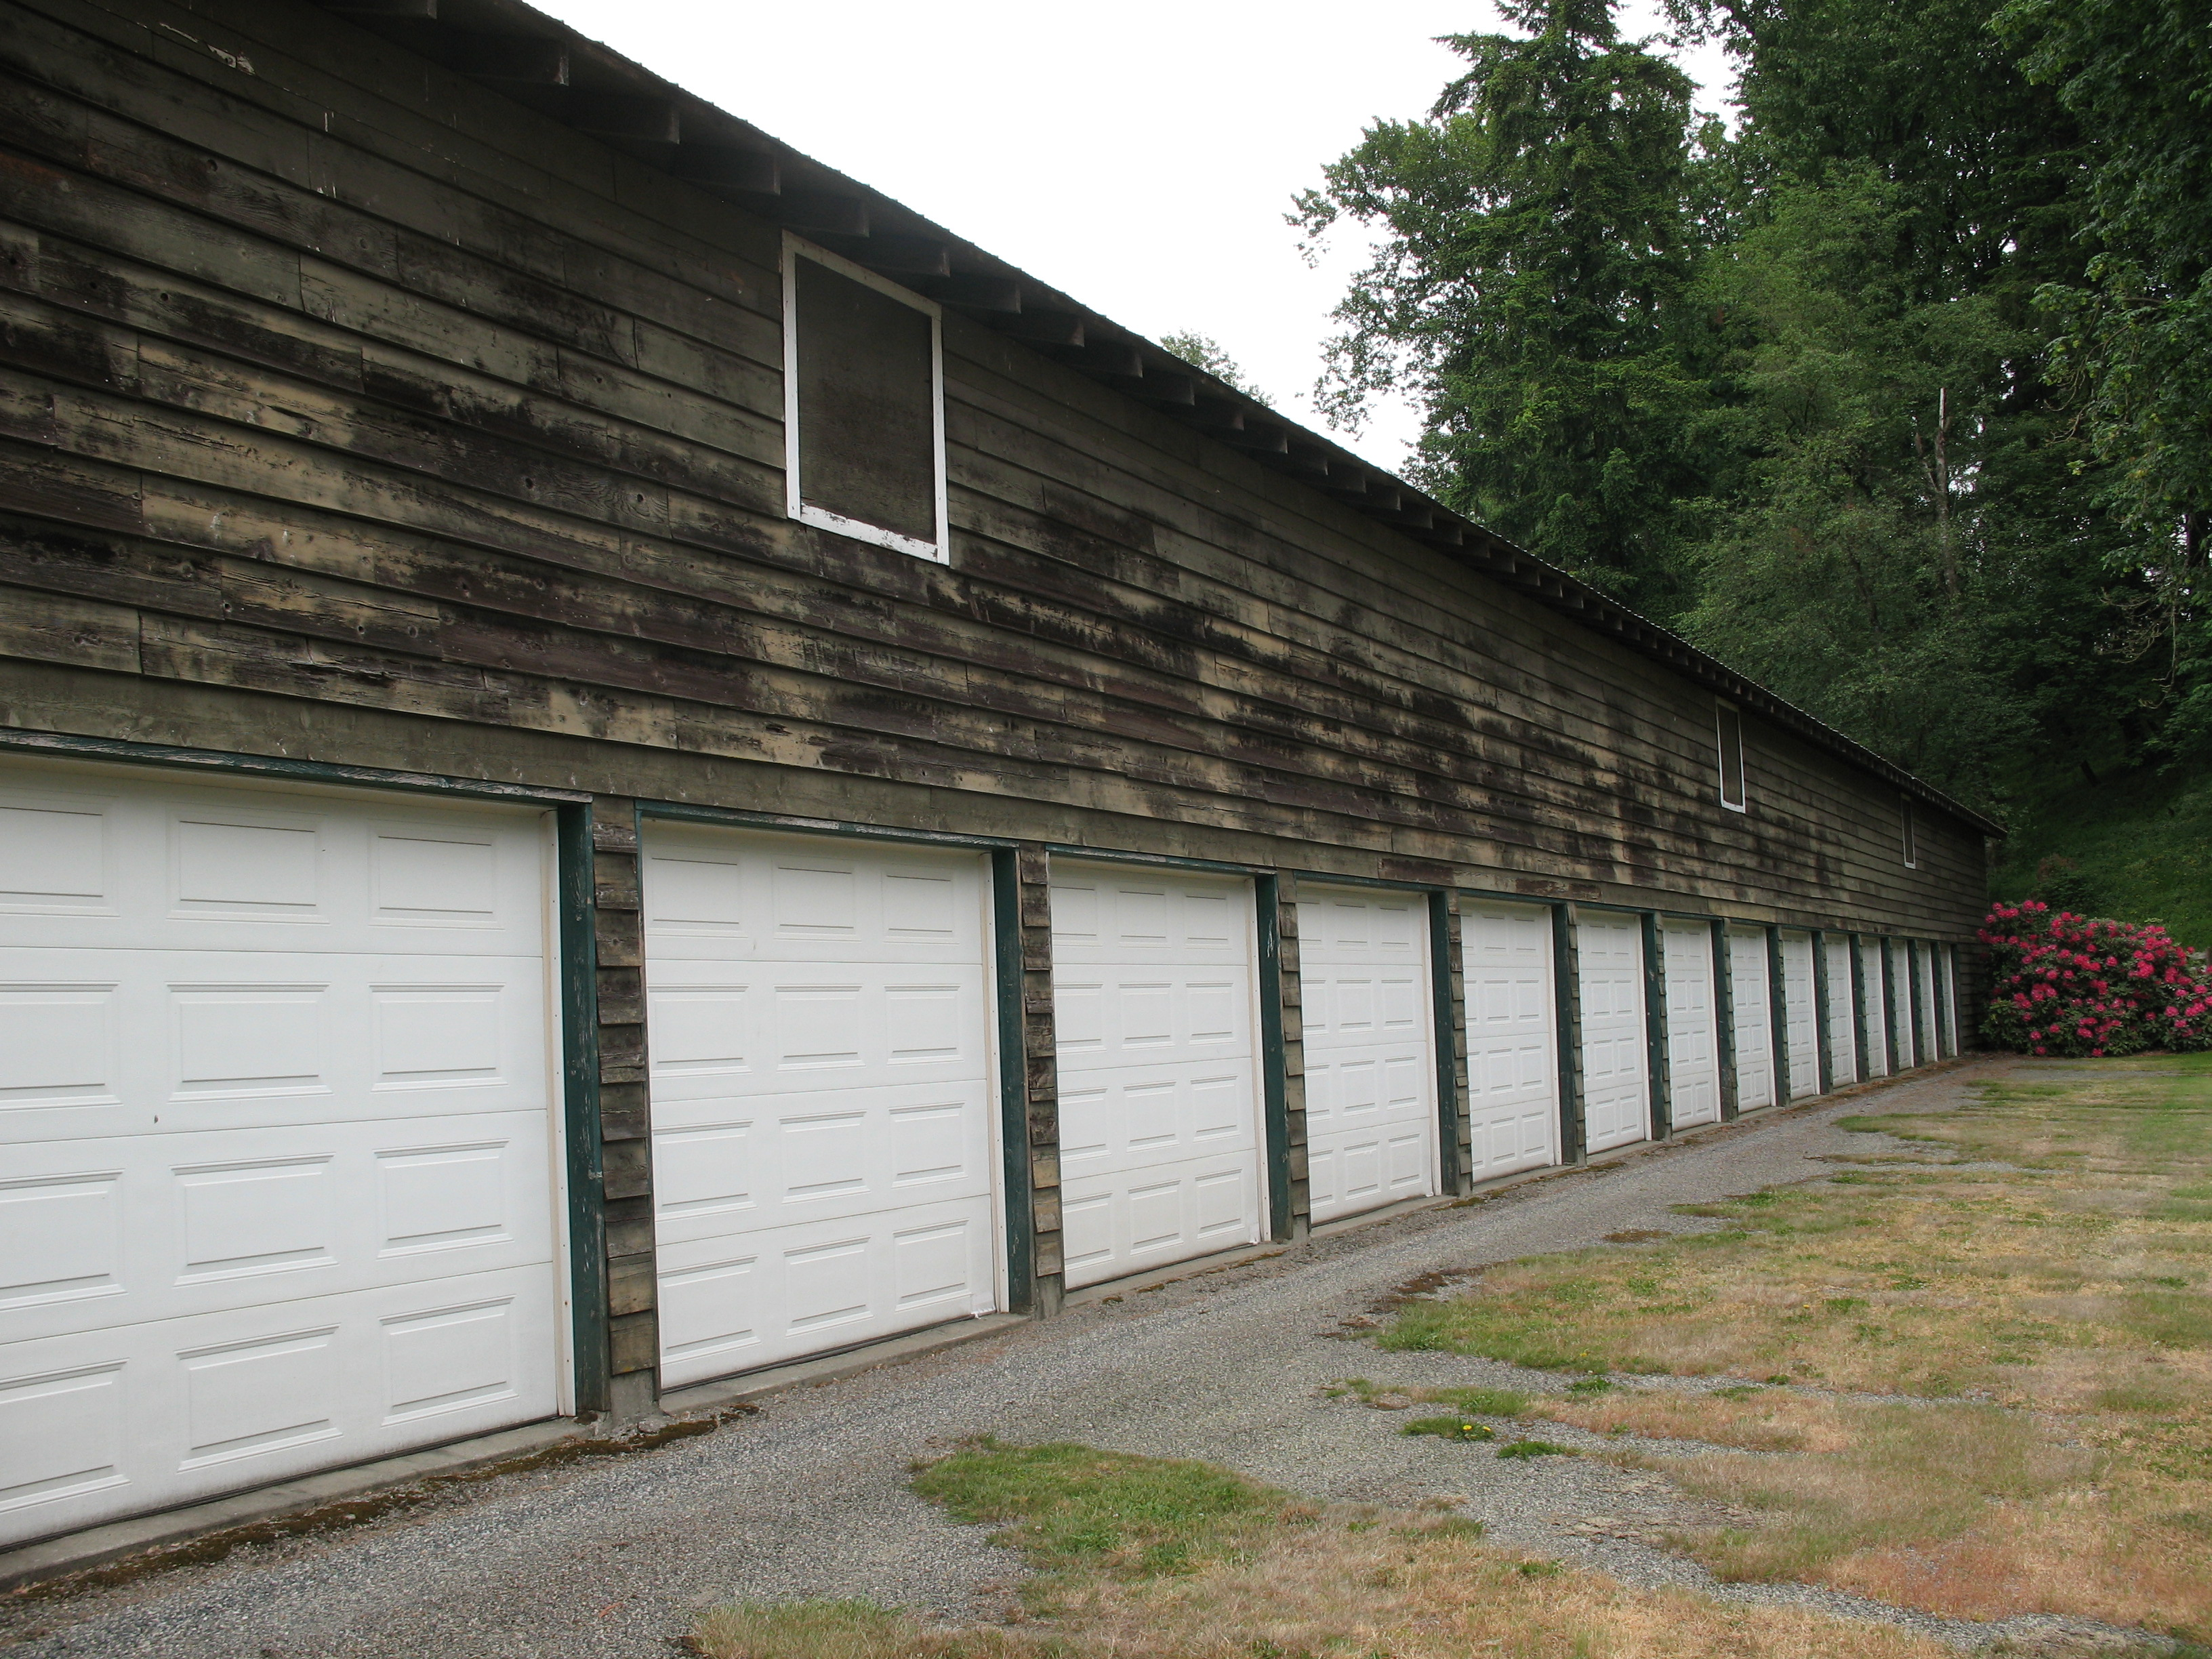 Converted poultry barn has a bay & a garage door for each restored classic car.